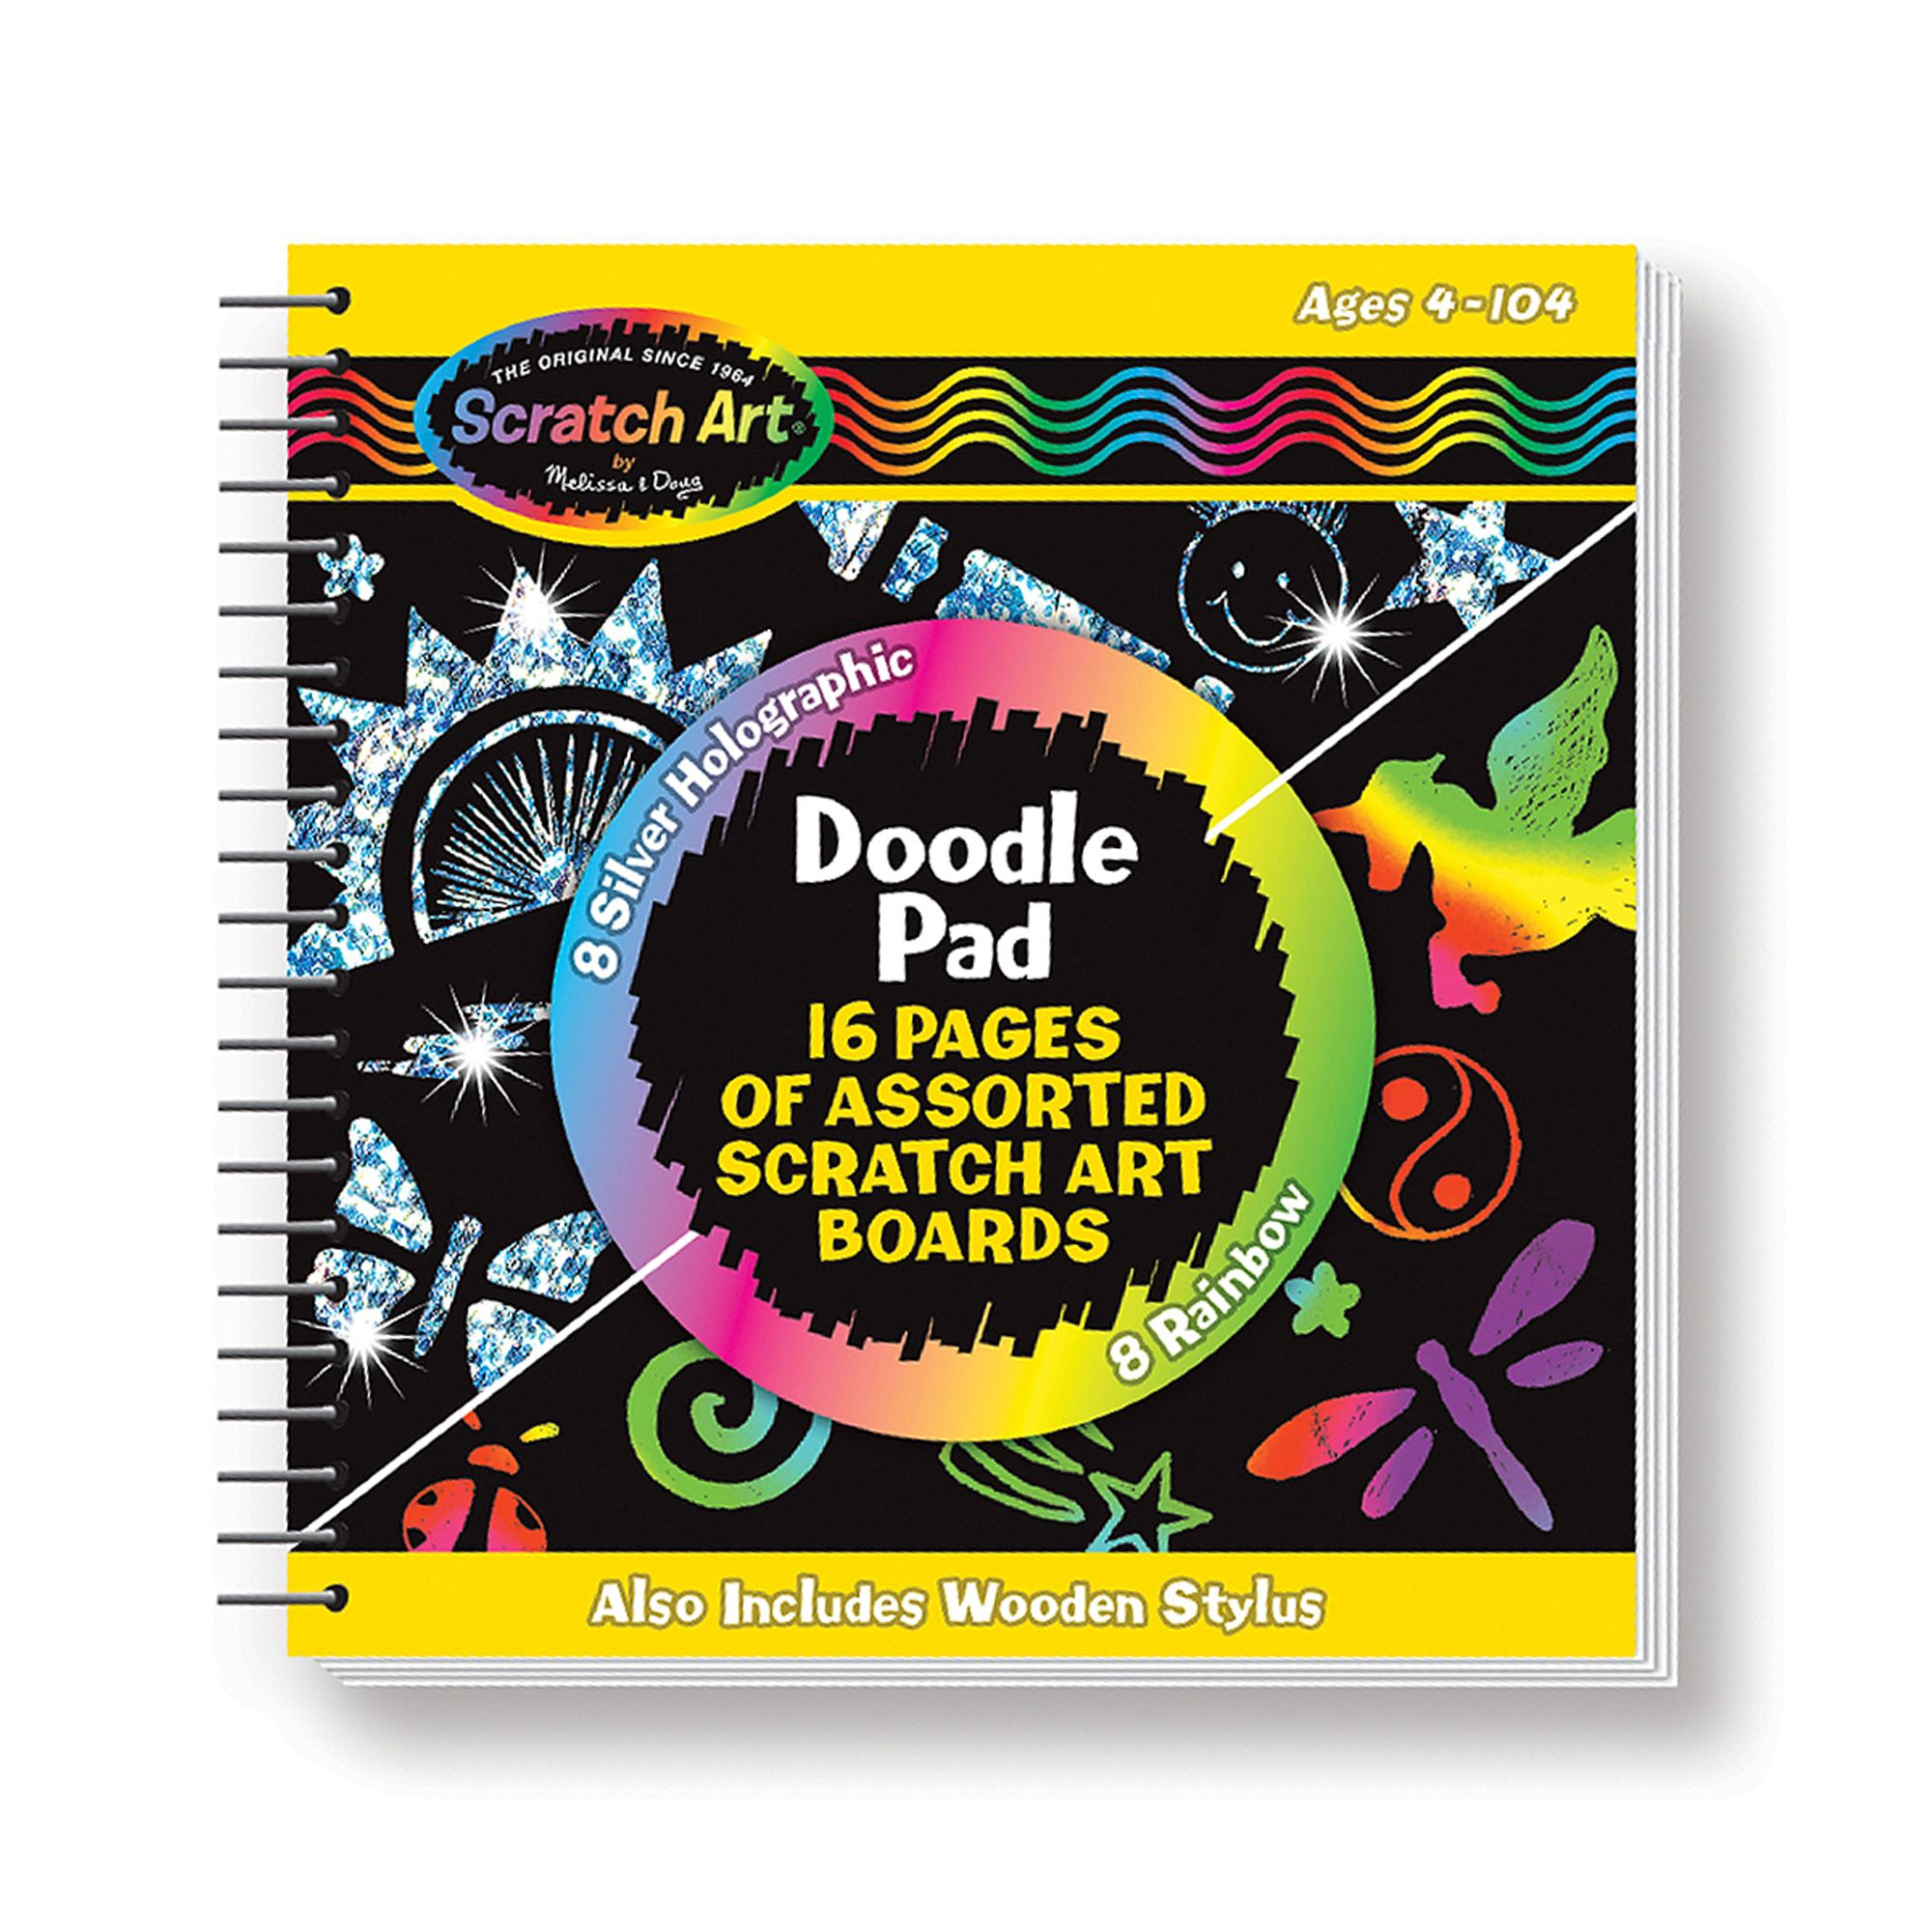 Flip open the doodle pad, draw or trace your designs and watch amazing effects shine through! With this pocket-sized spiral-bound drawing book, it's easy for kids to take their Scratch Art to go. The book includes 8 Scratch Art pages with rainbow backgrounds, 8 Scratch Art pages with silver holographic backgrounds, a wooden mini stylus and a stylus pocket in the cover. Former Scratch-Art® Product Number: 3287